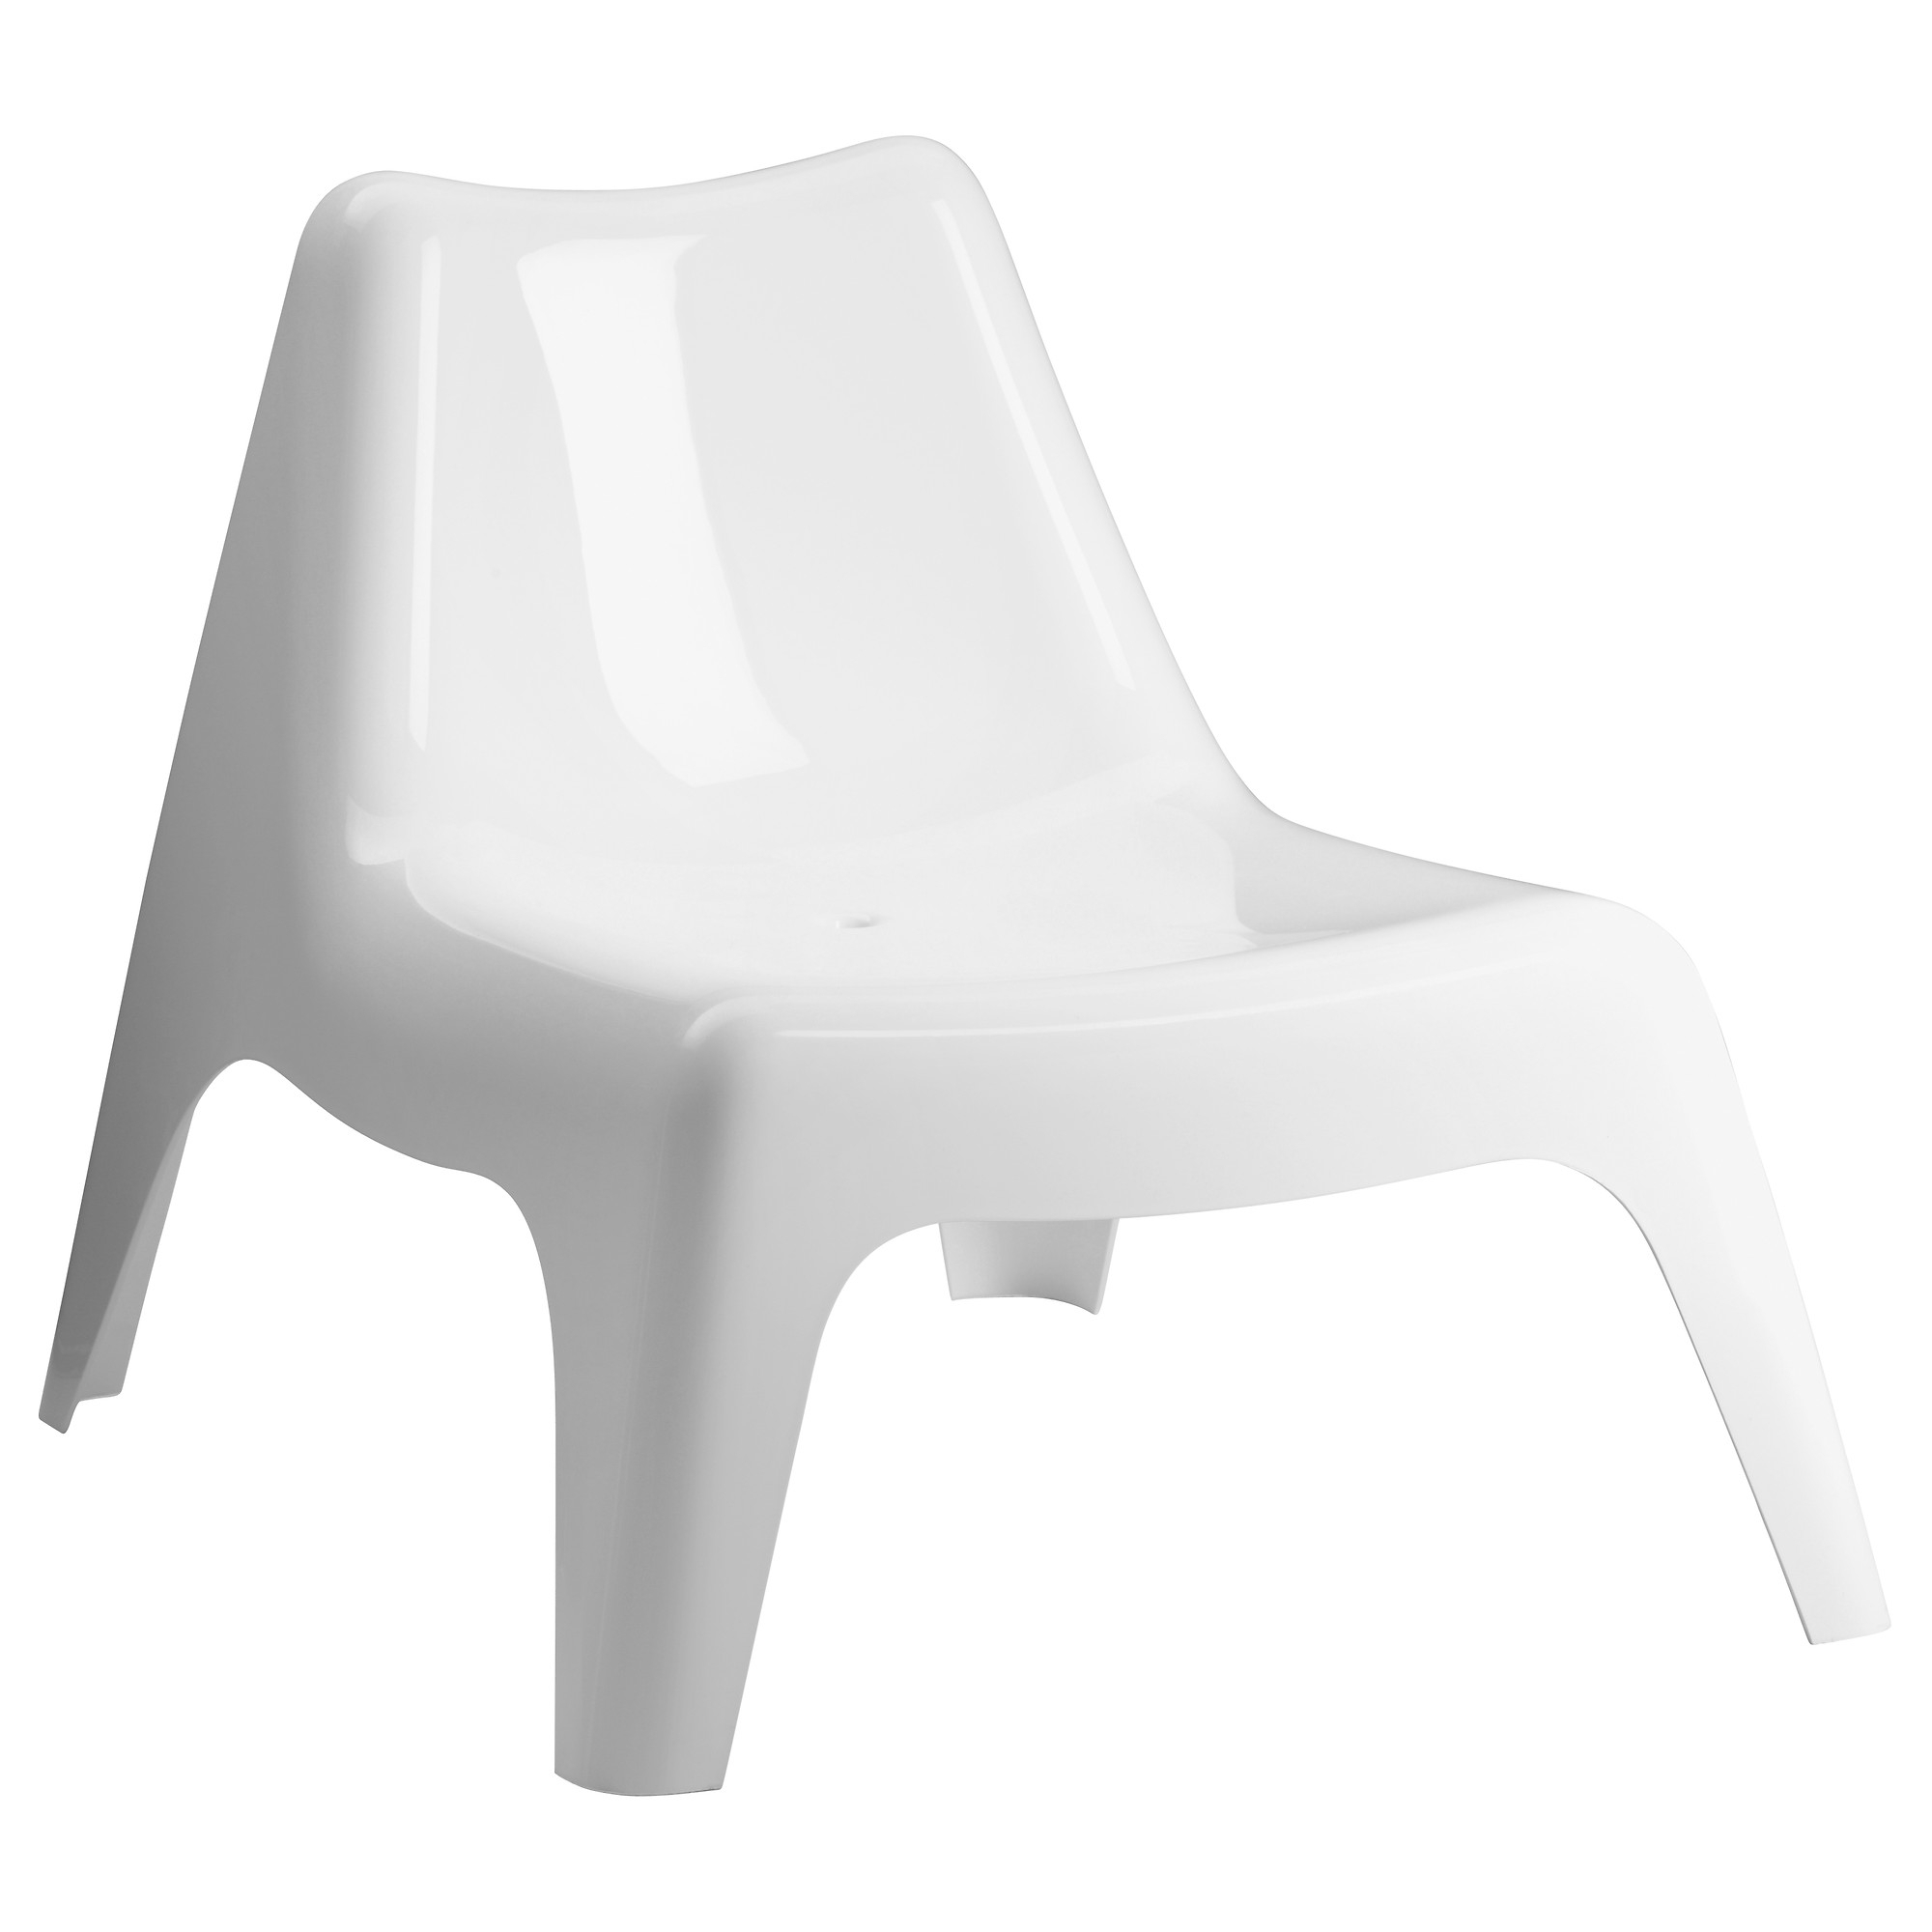 Latest Ikea Outdoor Chaise Lounge Chairs Pertaining To Ikea Ps Vågö Chair, Outdoor – White – Ikea (View 8 of 15)